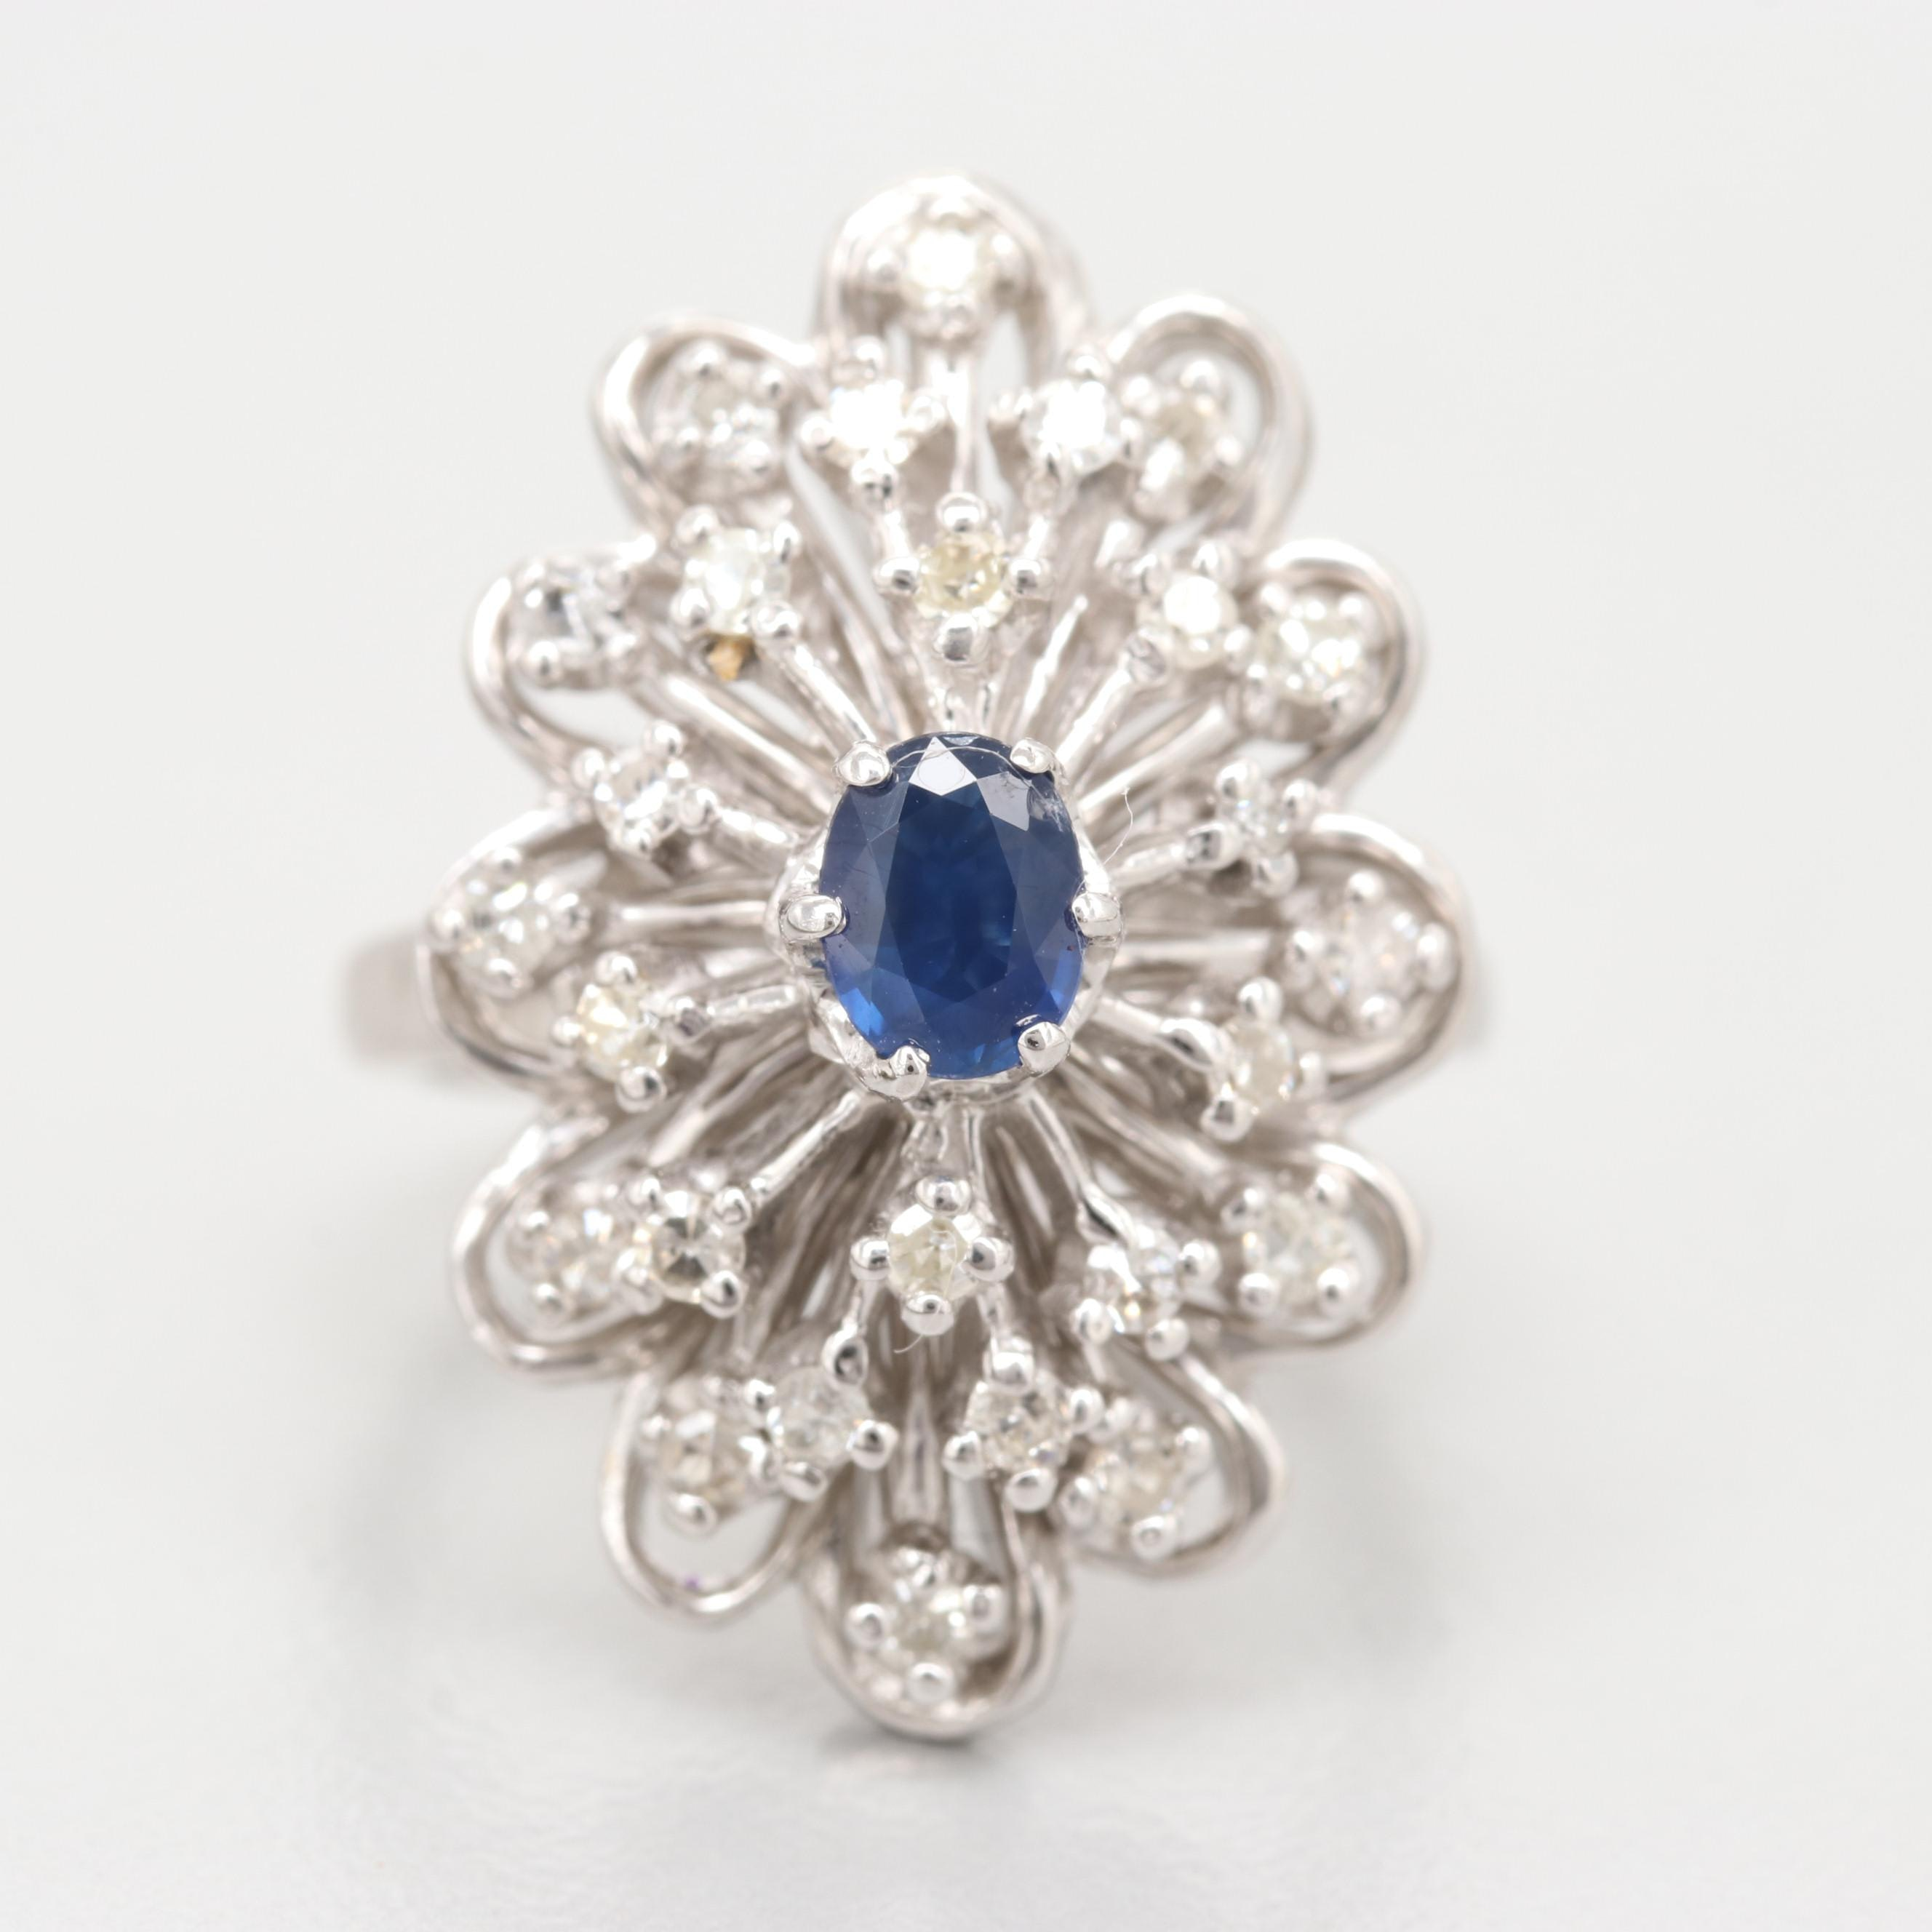 14K White Gold Blue Sapphire and Diamond Cocktail Ring